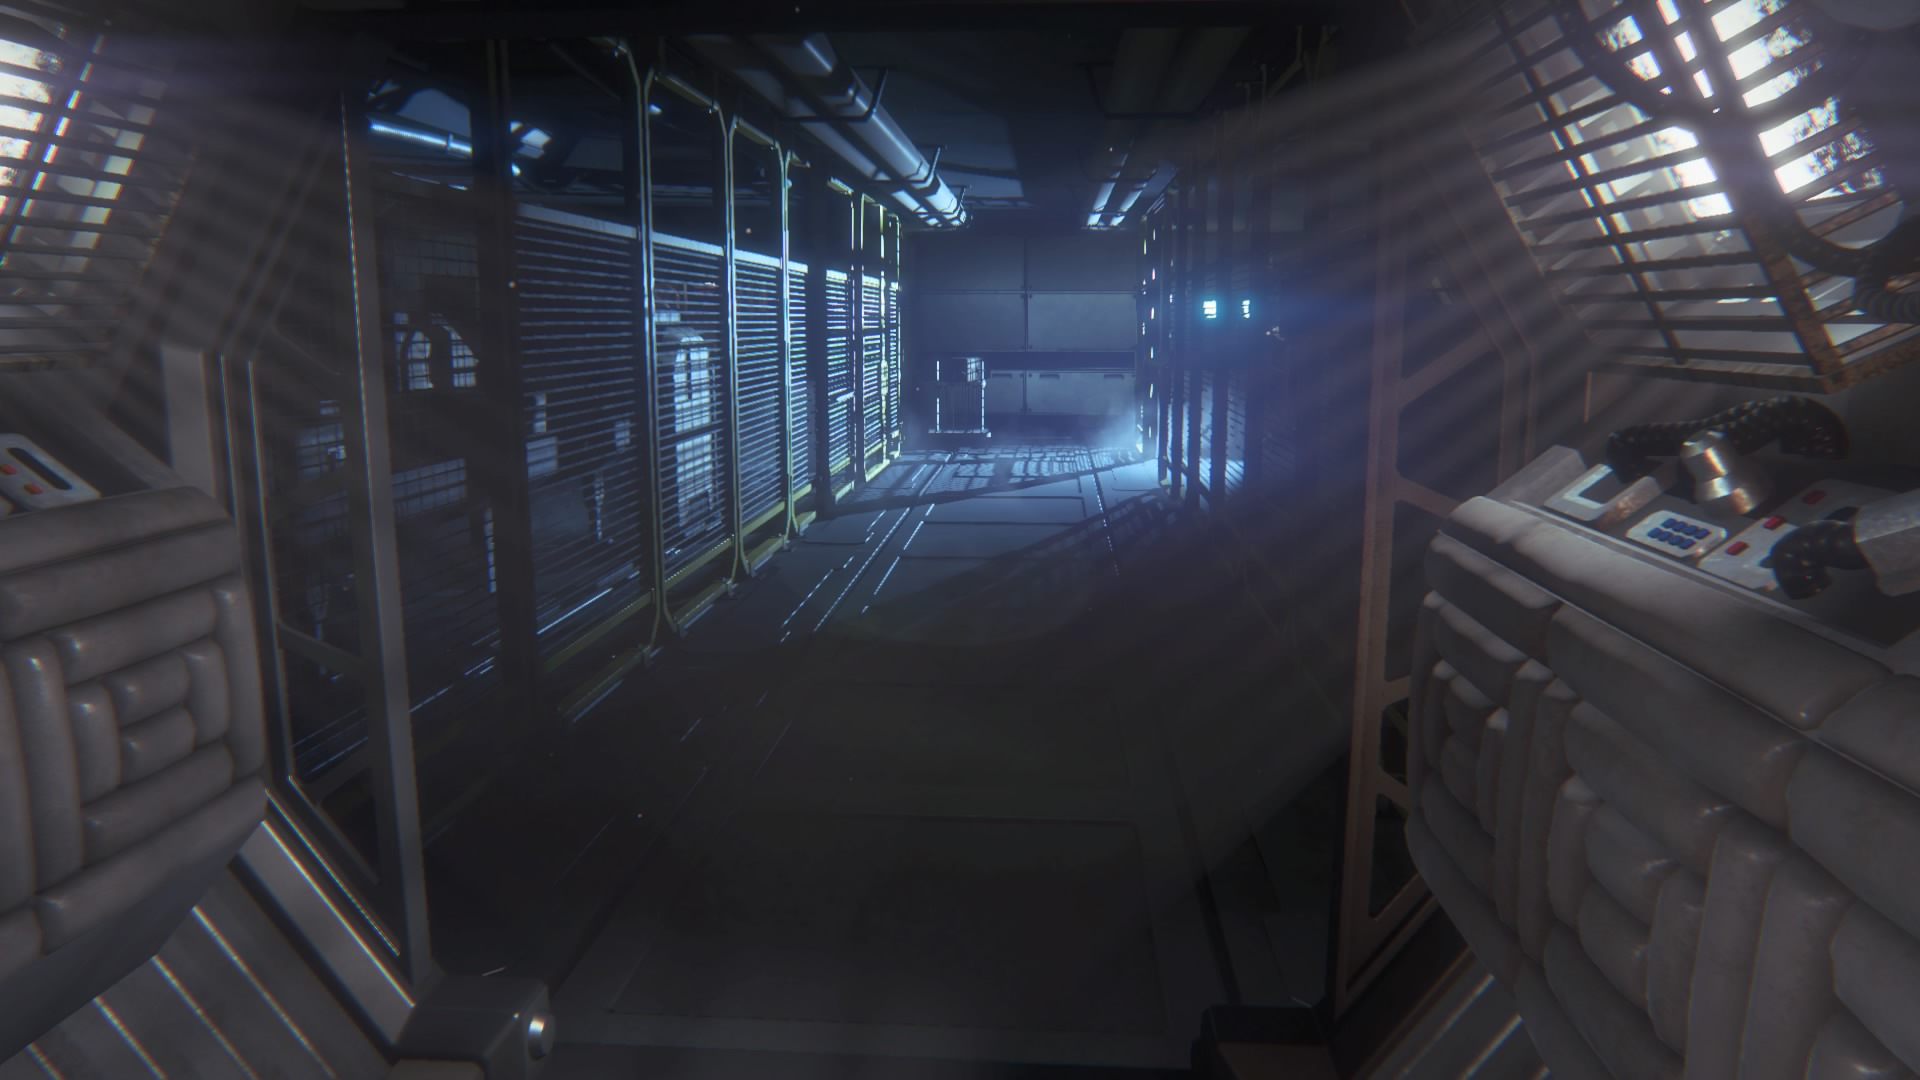 Changing the brightness works more like a claustrophobia meter. The brighter it is, the more spacious the station feels and the more confidence you approach the game with. Less fear.